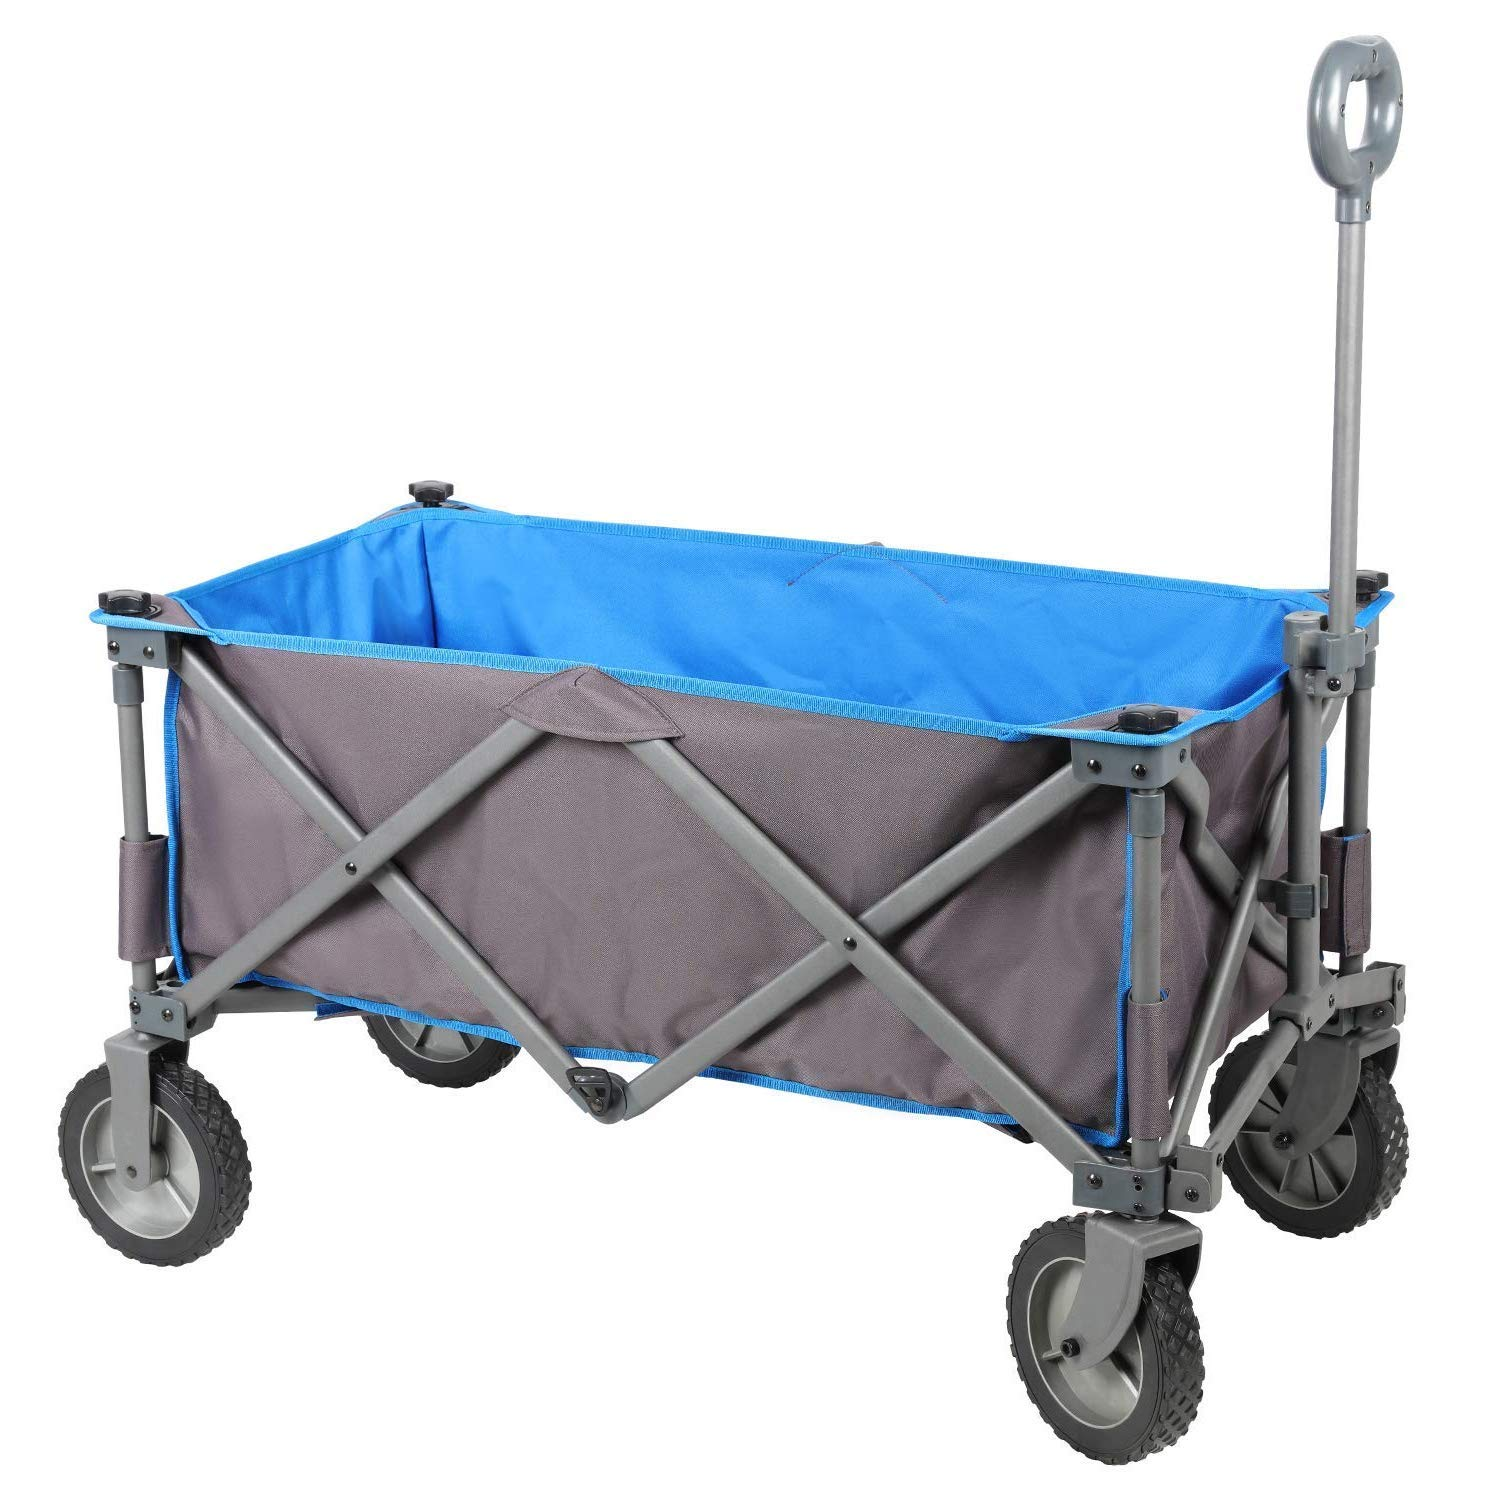 PORTAL Collapsible Folding Utility Wagon Quad Compact Outdoor Garden Camping Cart with Removable Fabric, Support up to 225 lbs by PORTAL